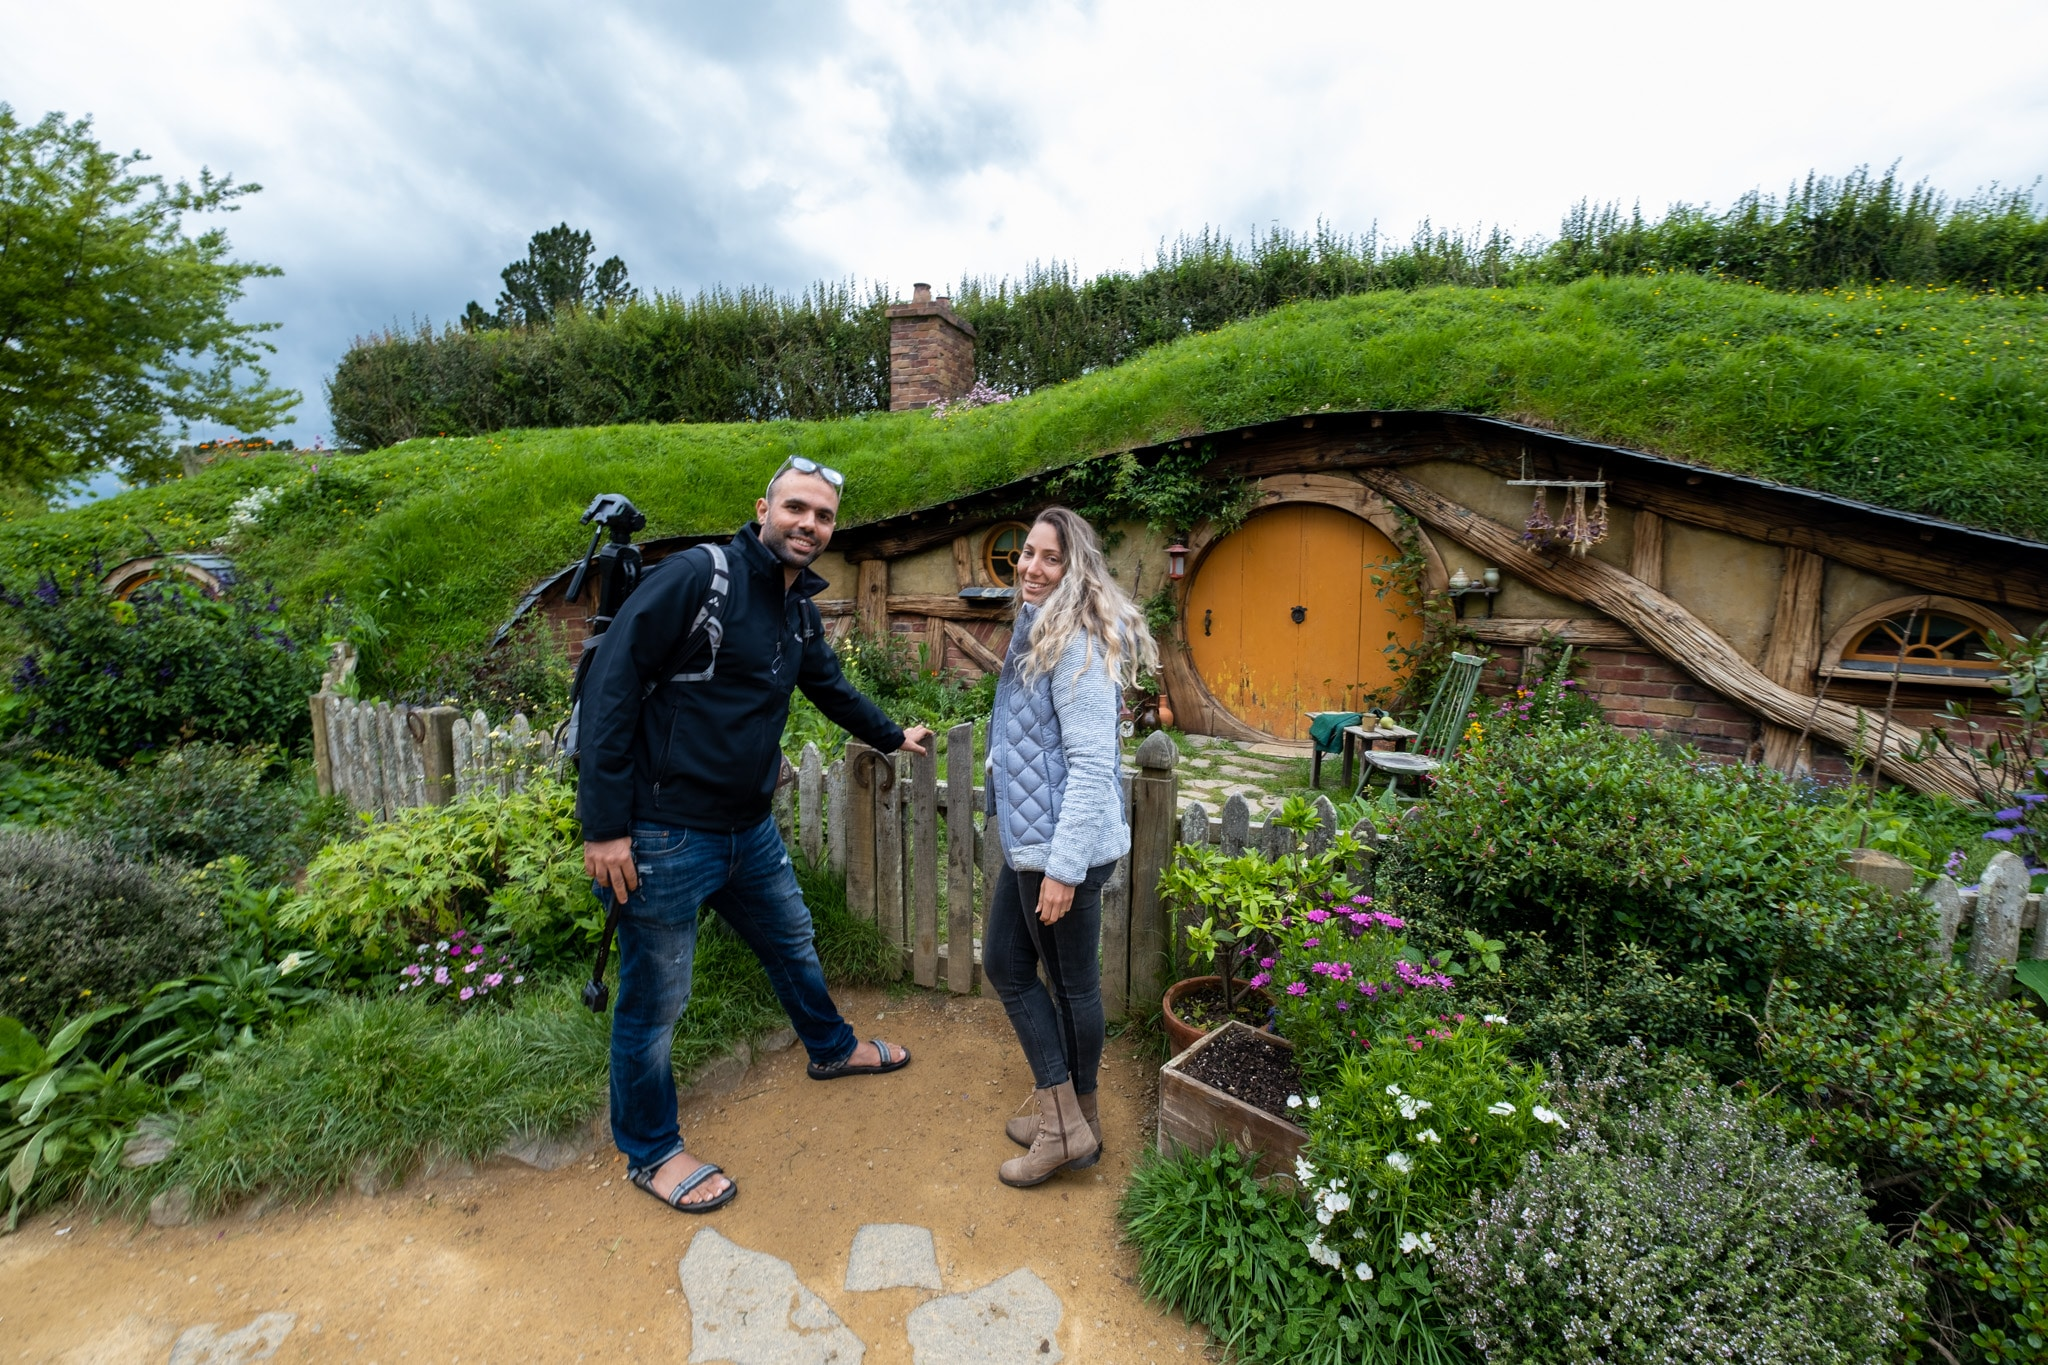 Tavel-Hobbiton-New-Zealand